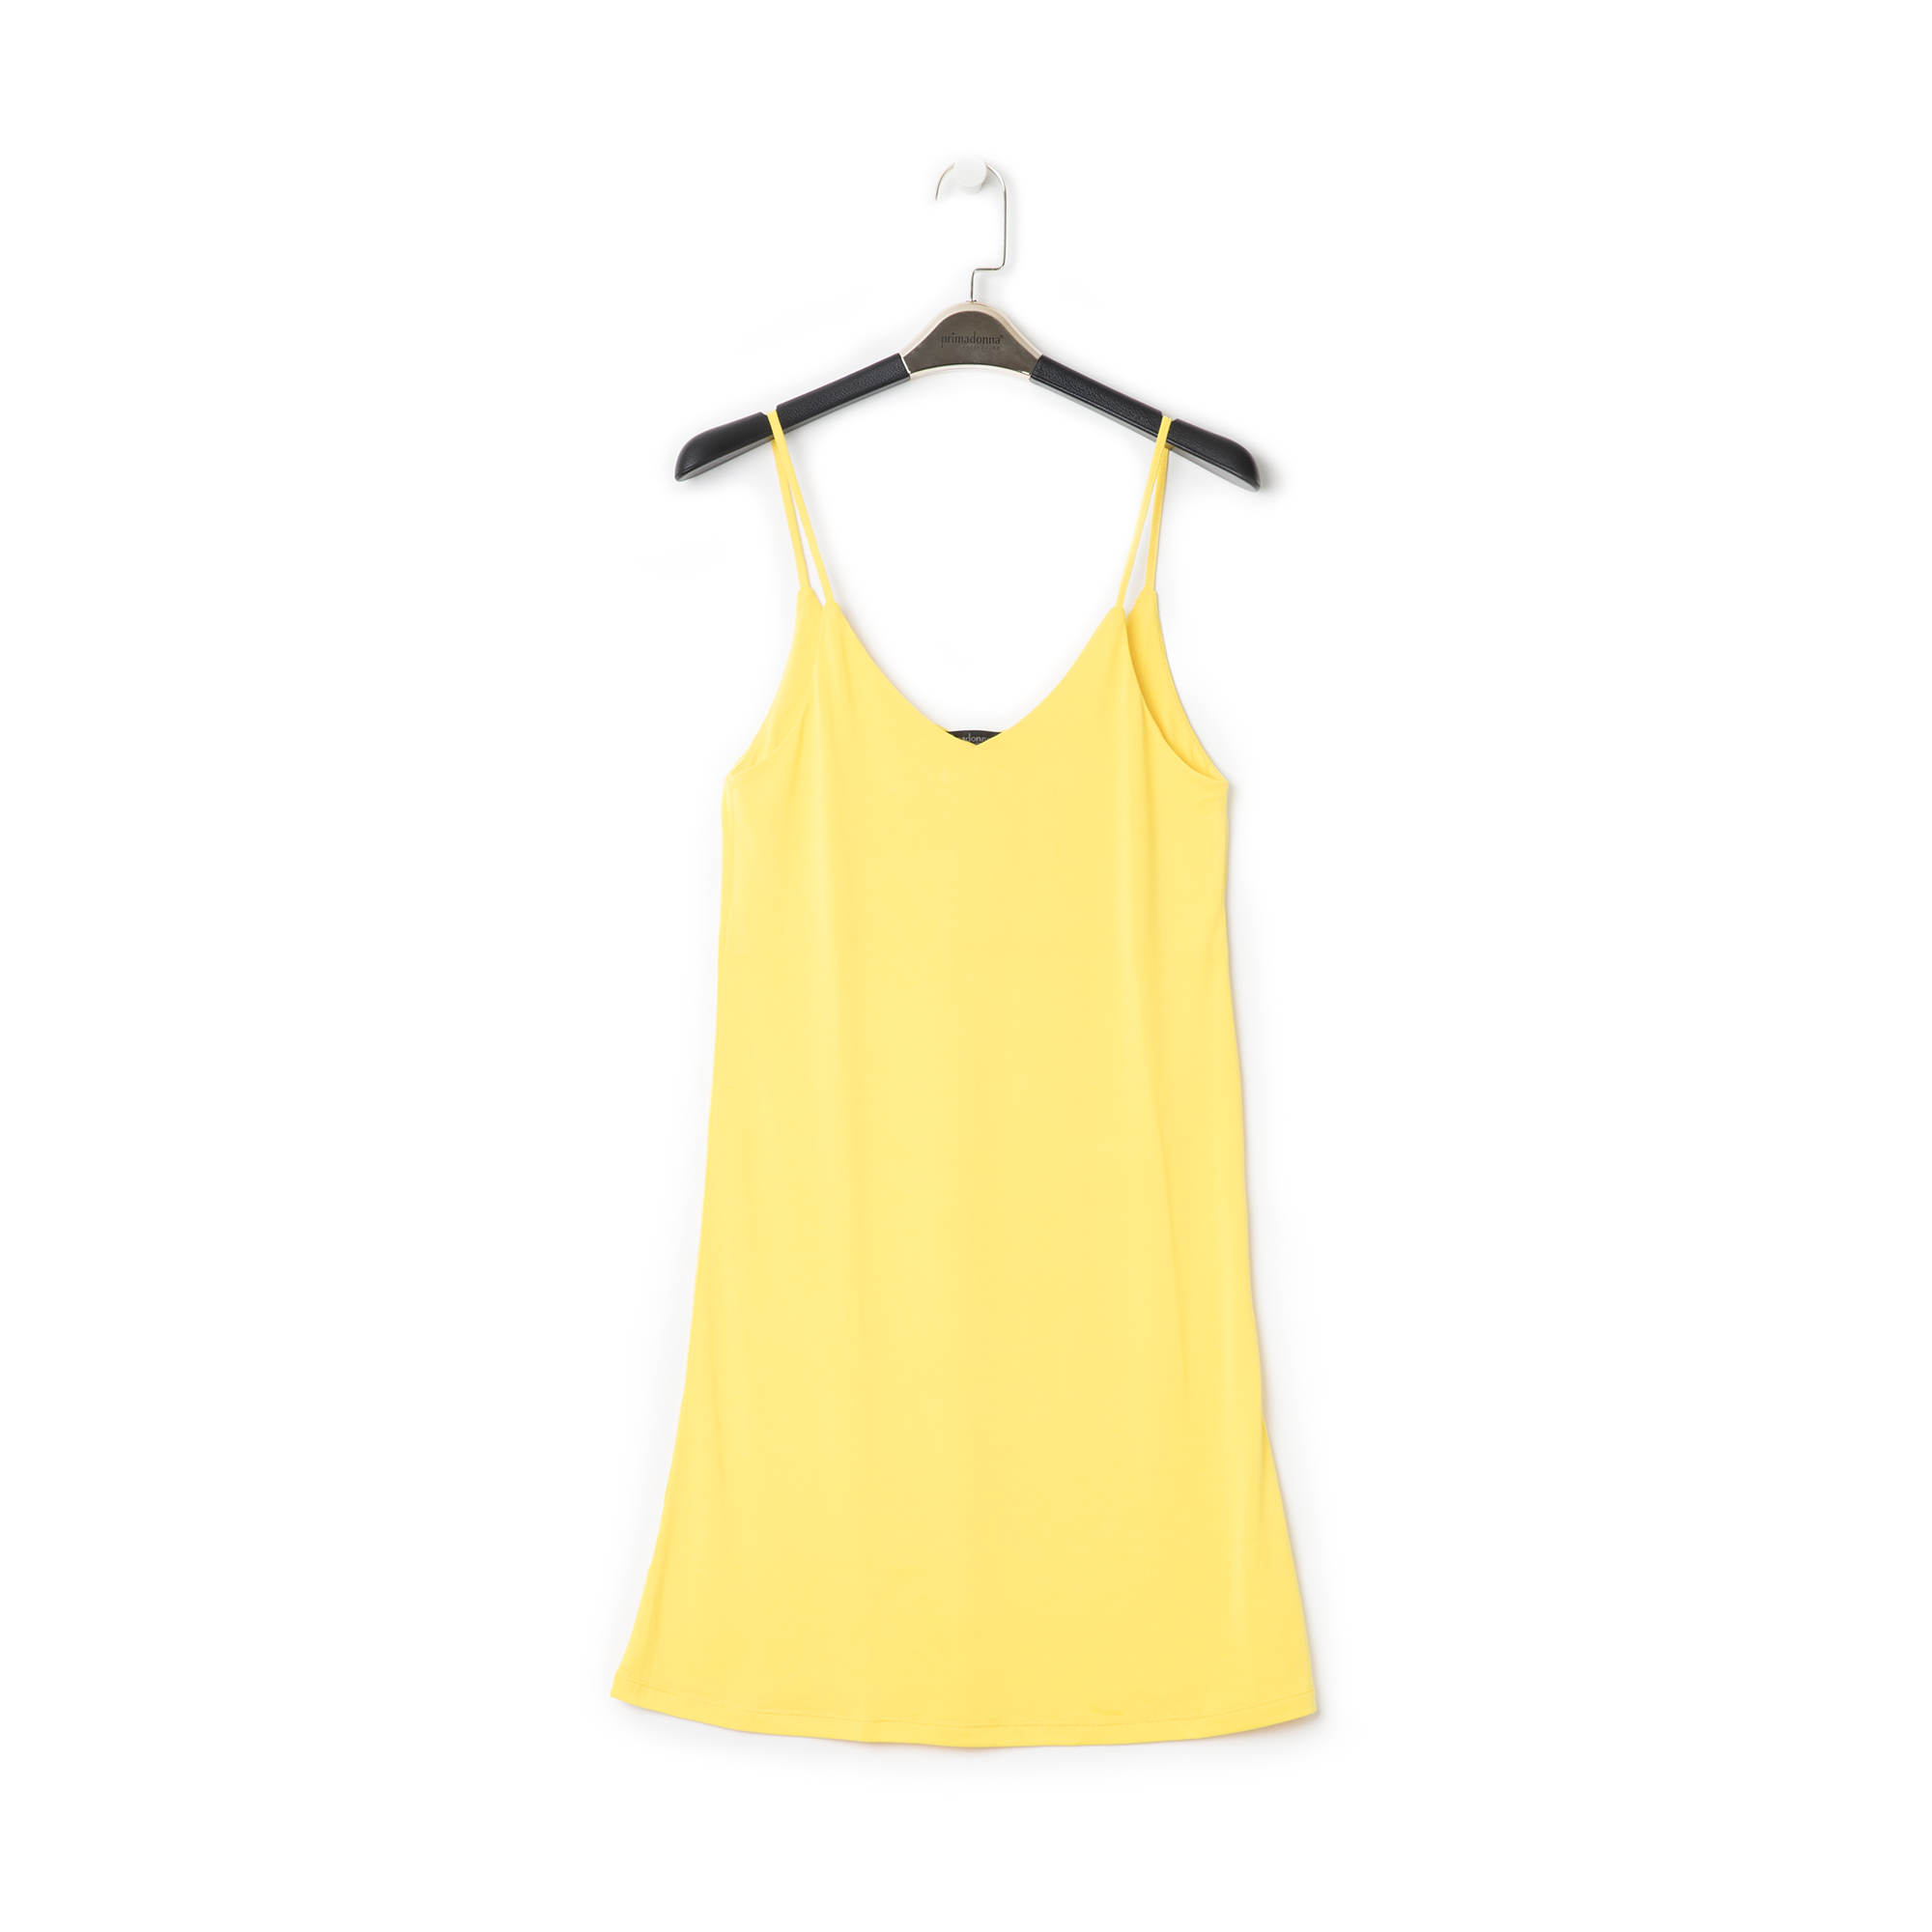 Mini-dress giallo con scollo a V